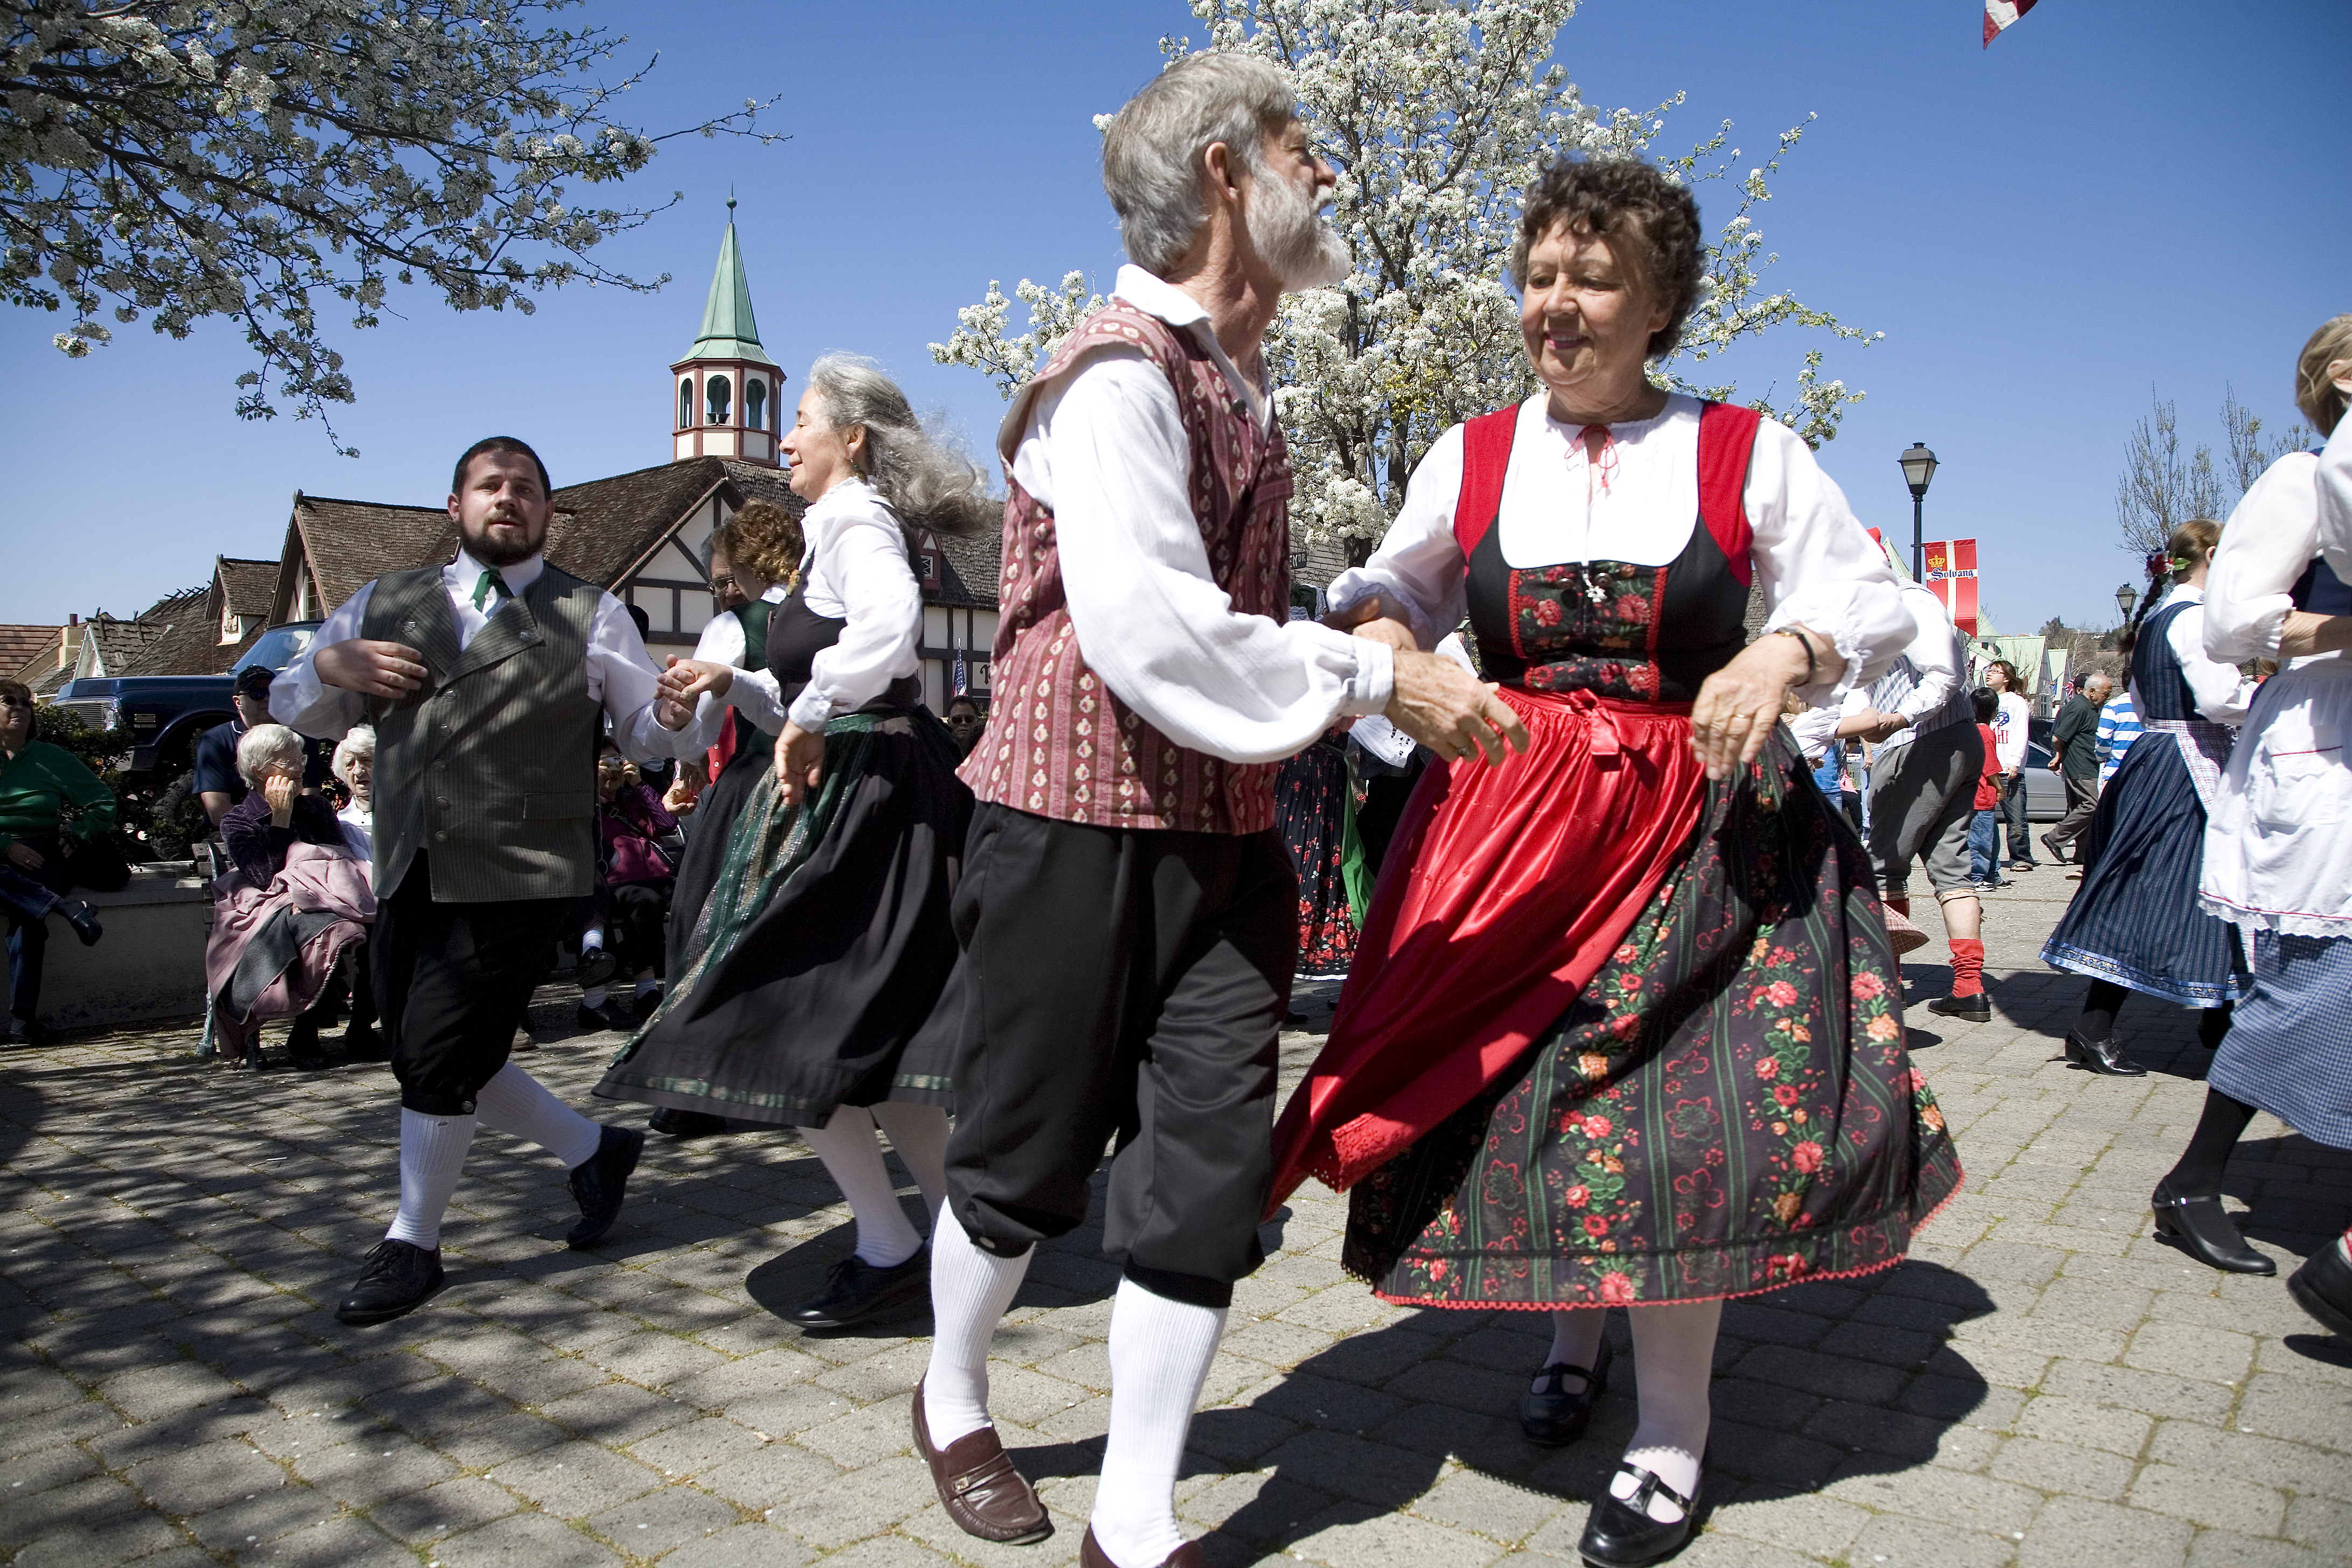 The Danish Days Festival is an annual event in Solvang, California, dating to 1936. The event honors Solvang's Danish heritage through traditional music, dancing, food, folk art, and storytelling.